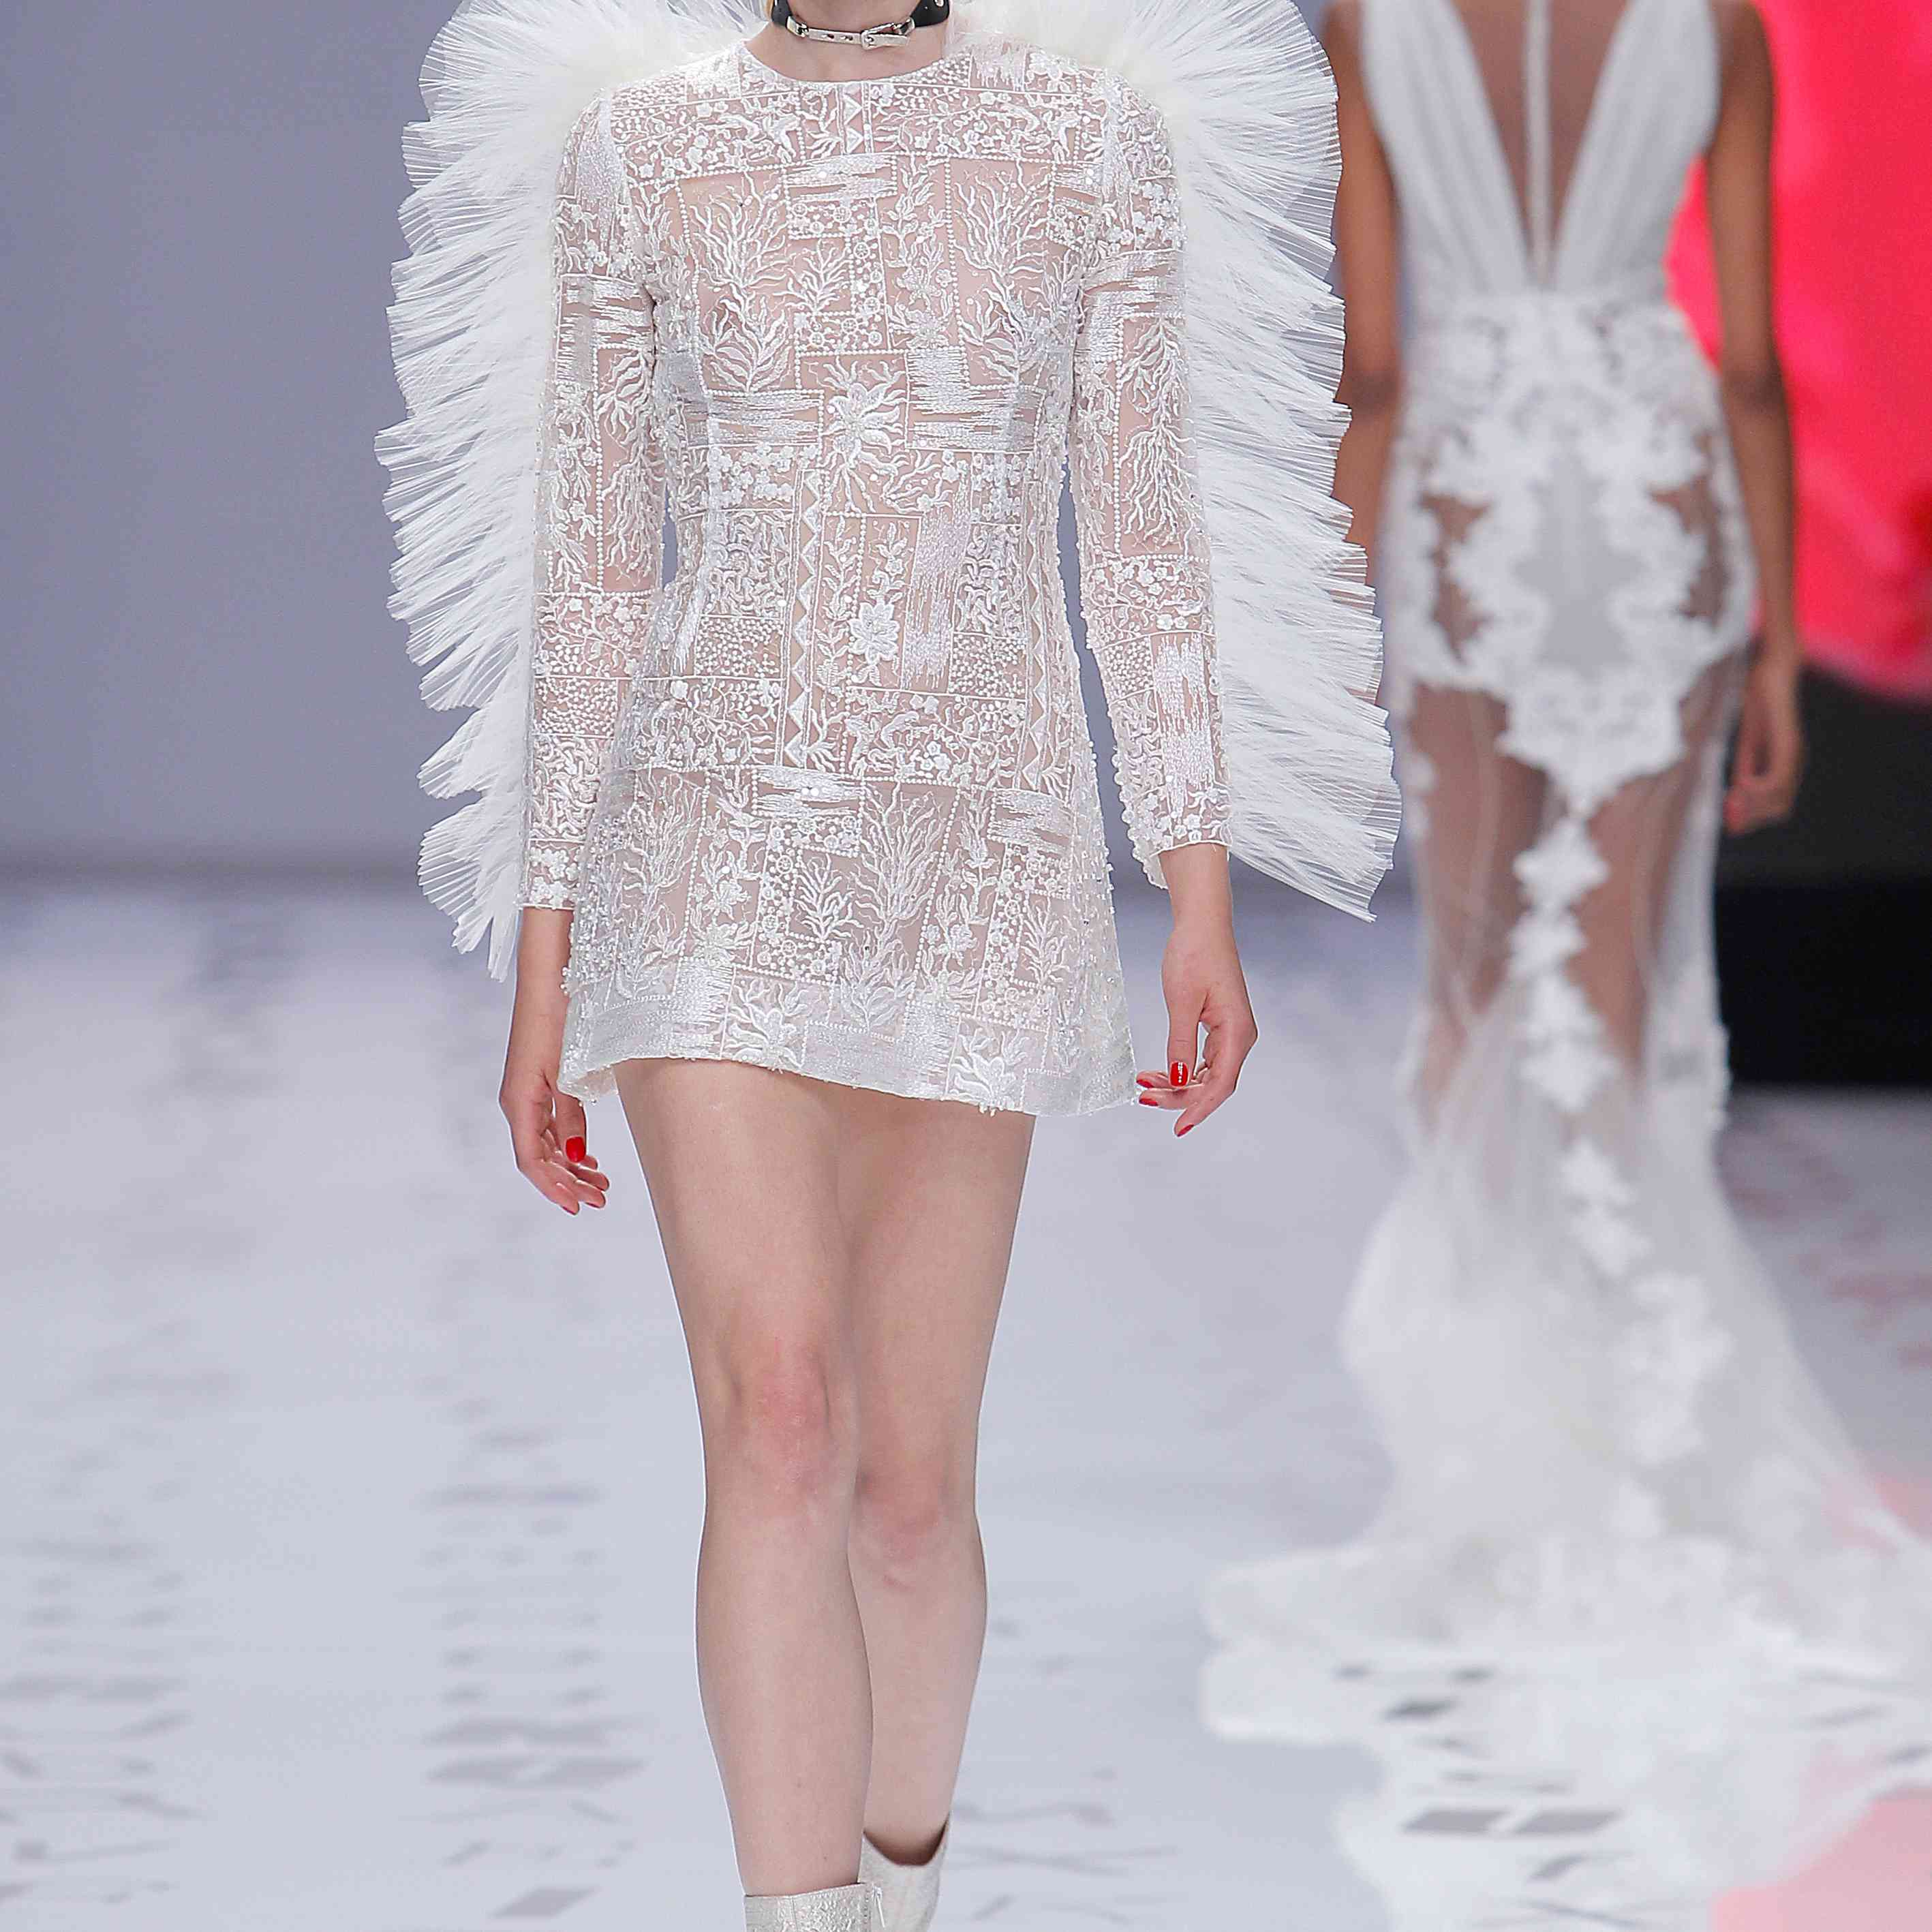 Model in a tulle long-sleeve minidress embroidered with pearls, sequins, and rhinestones with geometric and floral motifs, featuring a pleated tulle main on the shoulders and sleeves